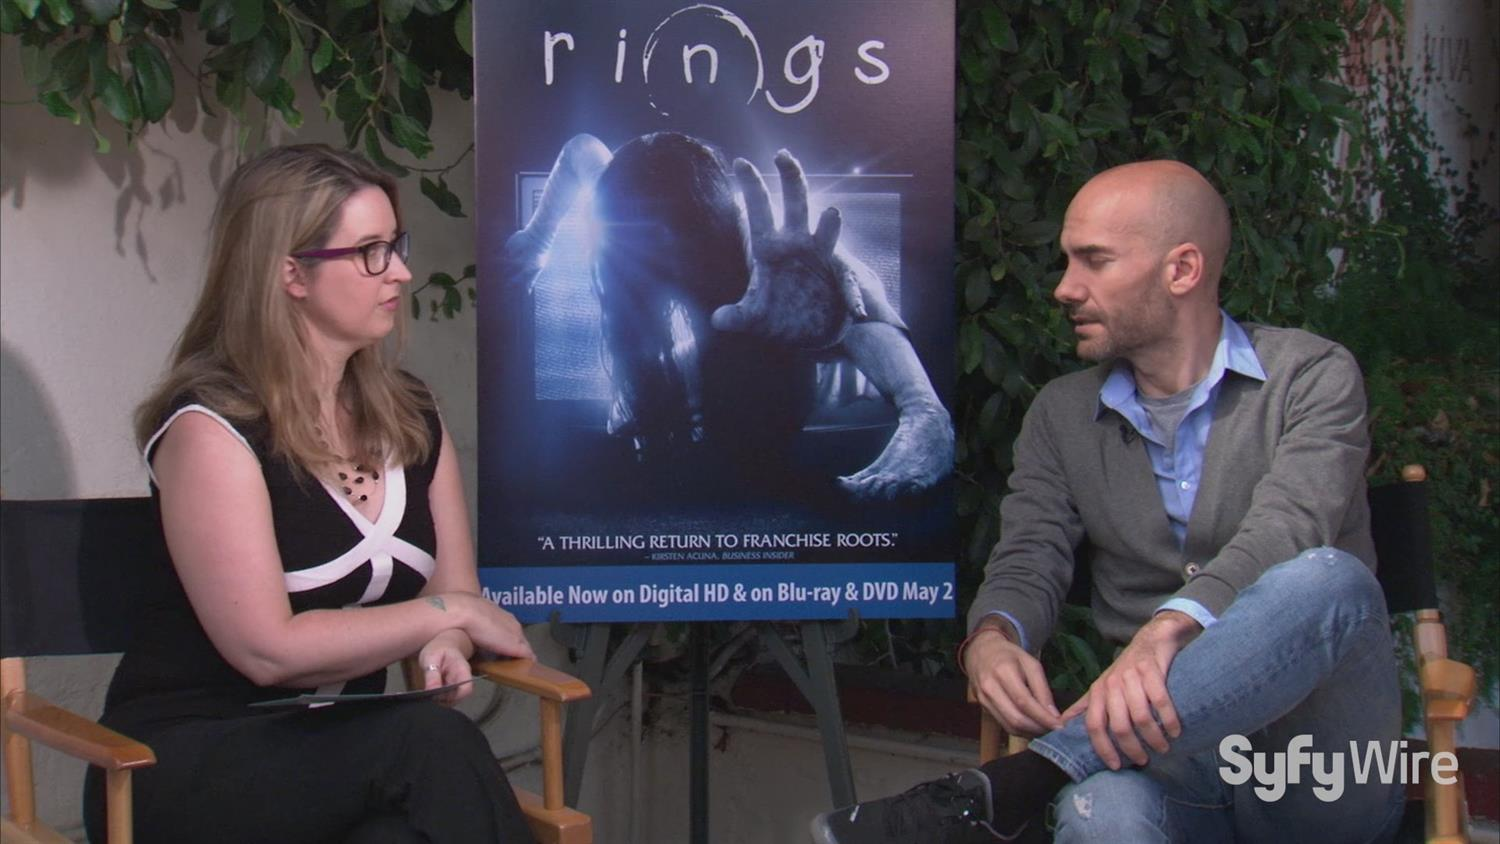 Exclusive: Rings Director on the Movie's Scary Psychology